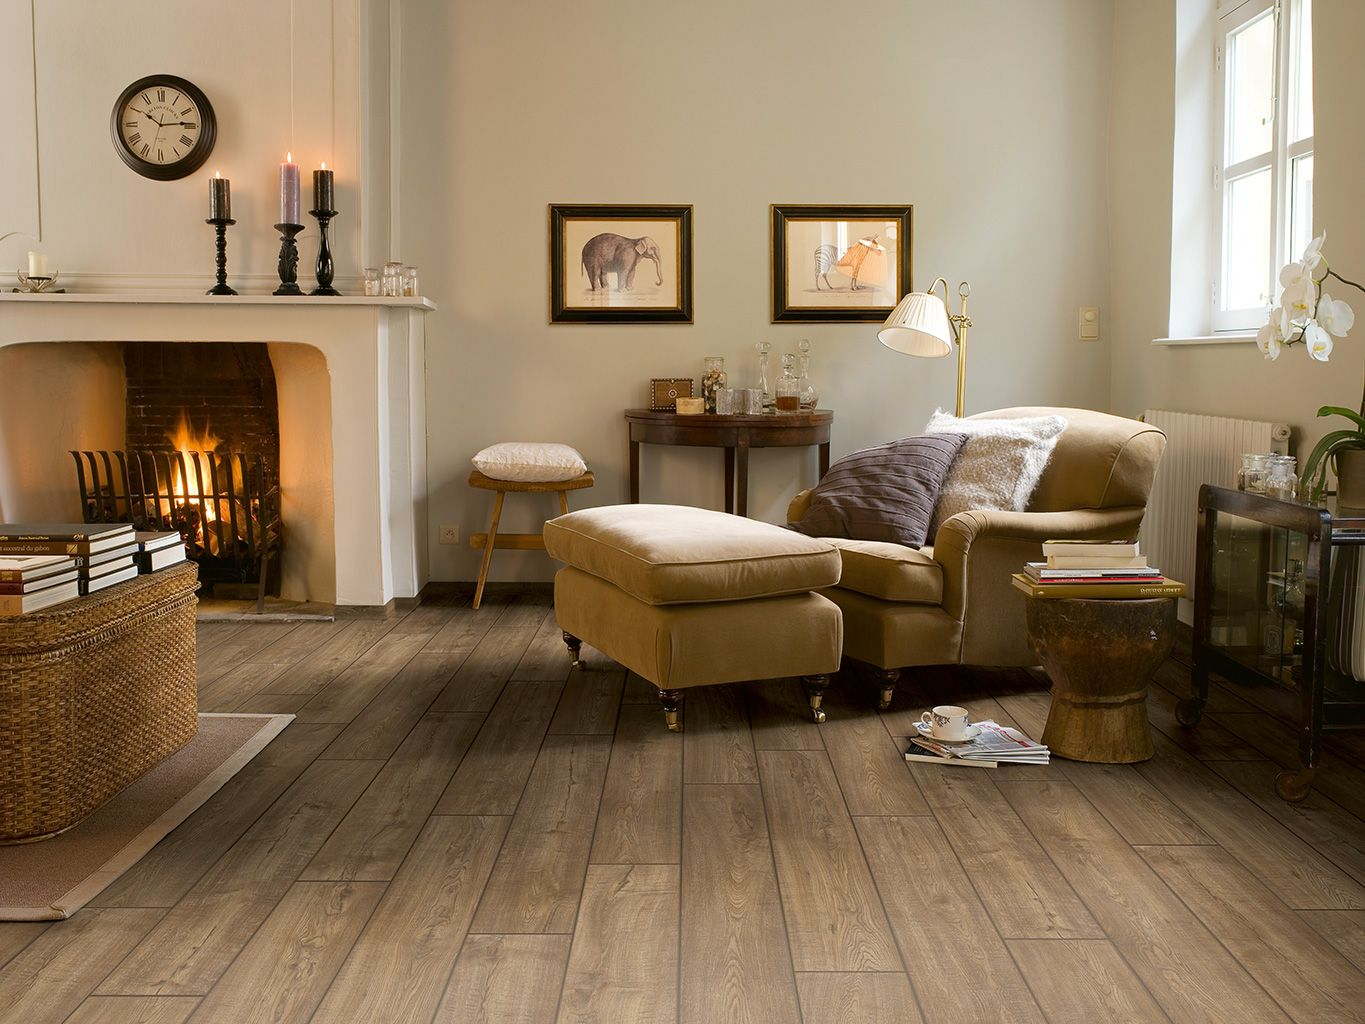 Light tile with a seamless transition to dark wood floor ...